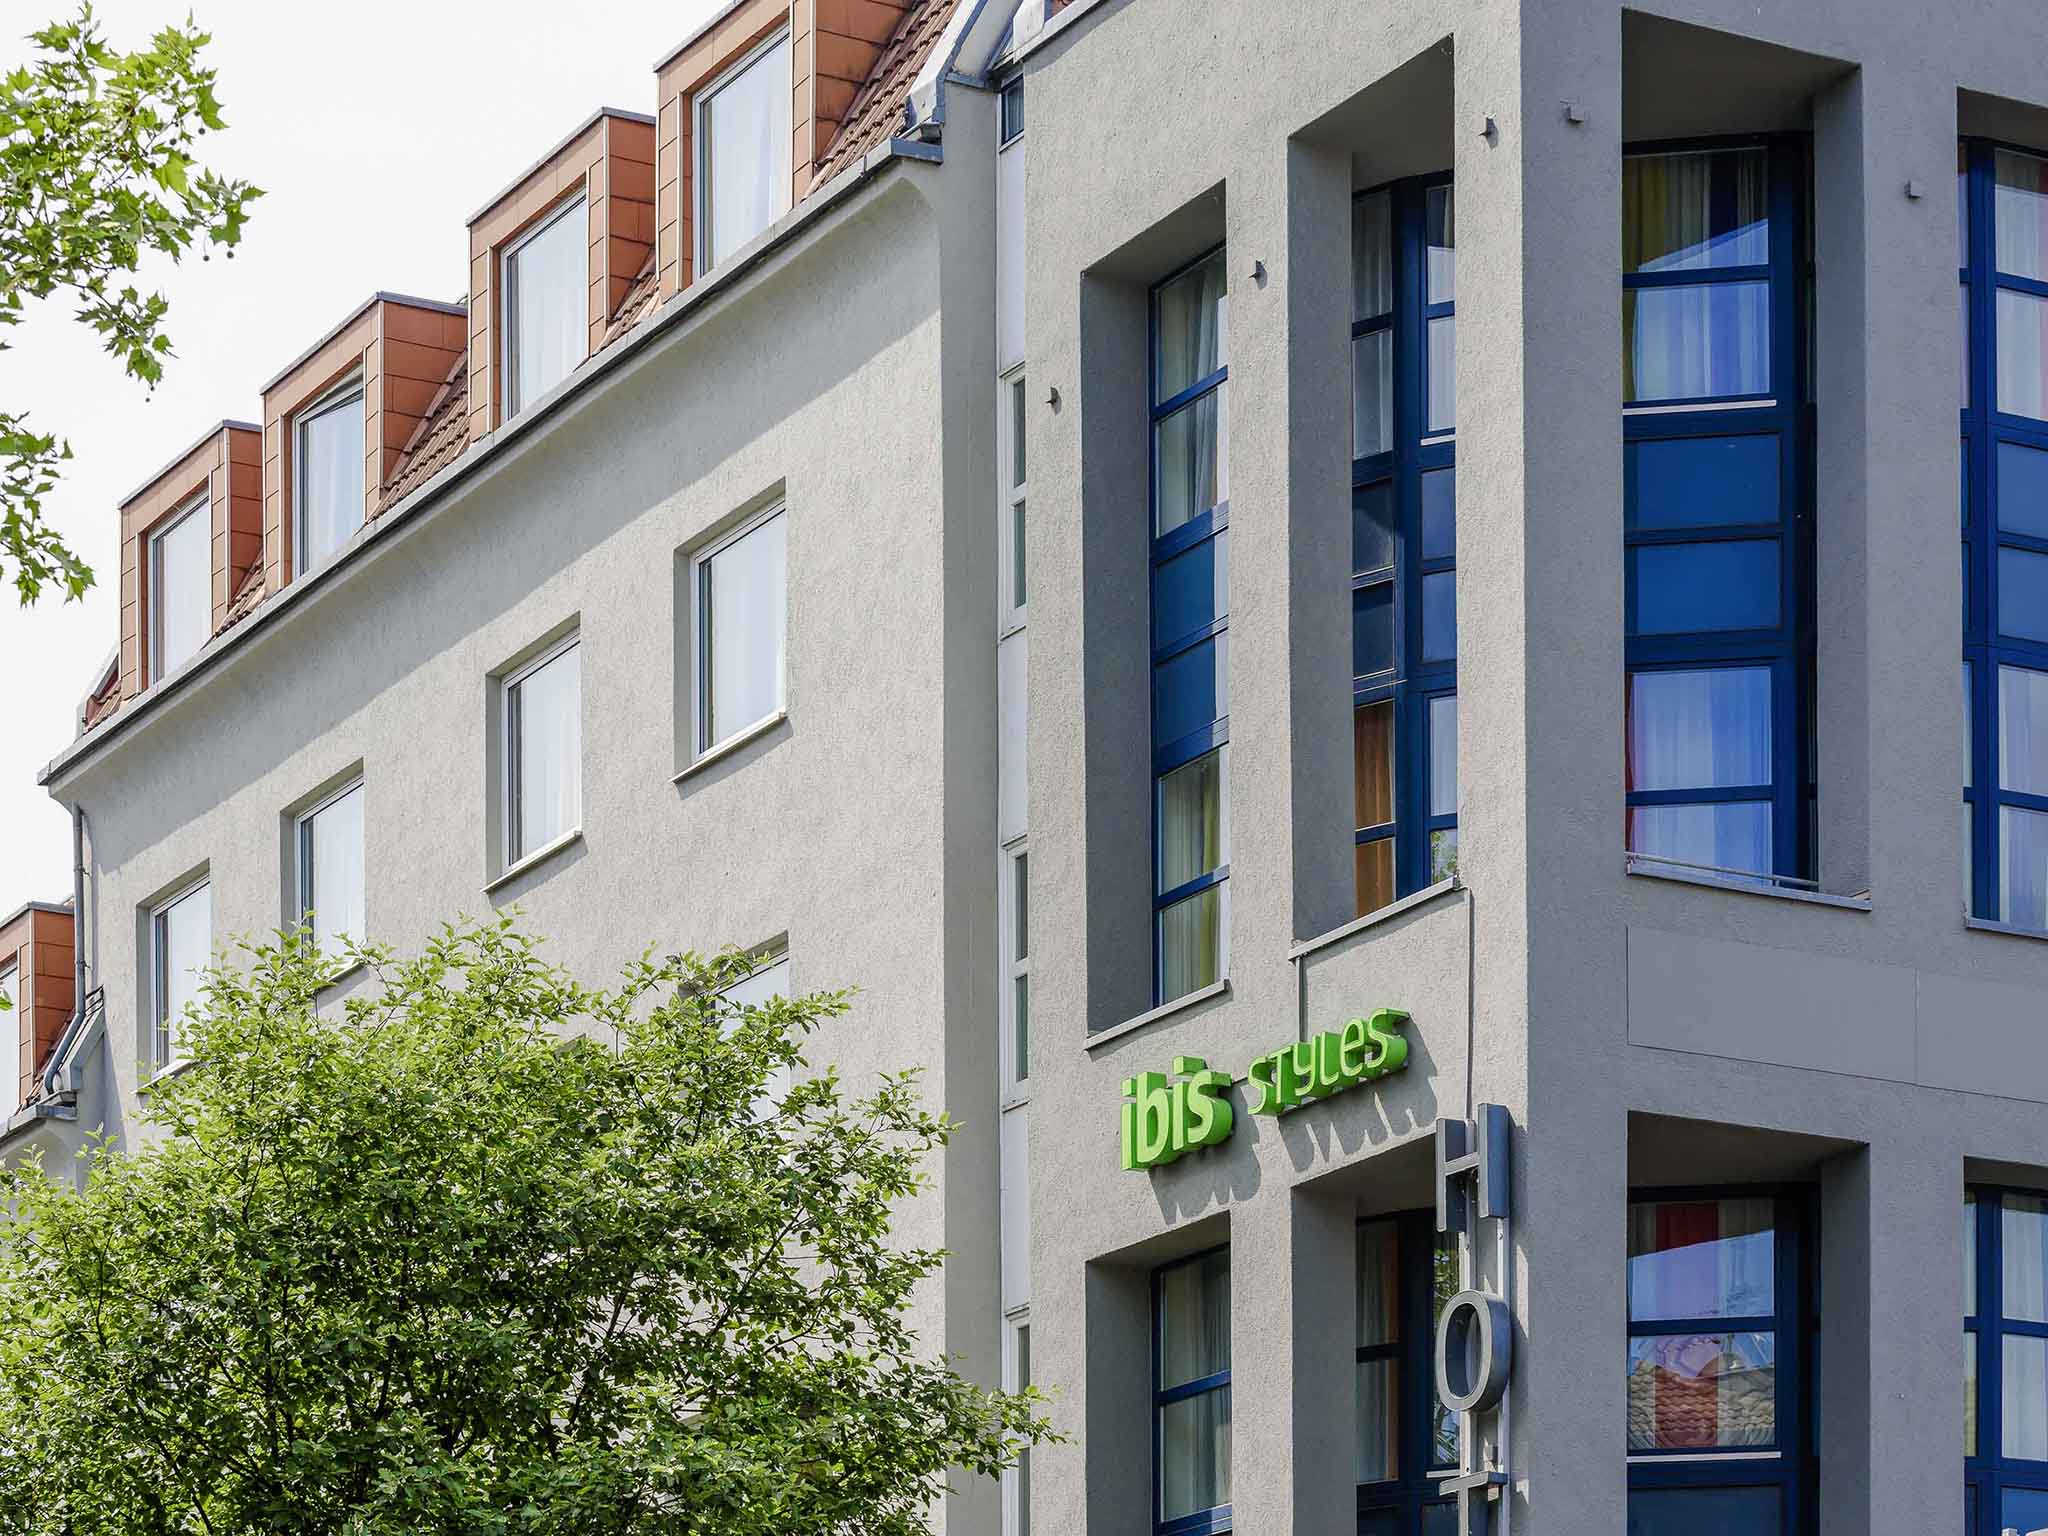 Hotel ibis styles hotel aachen city book now free wifi for Designhotel aachen